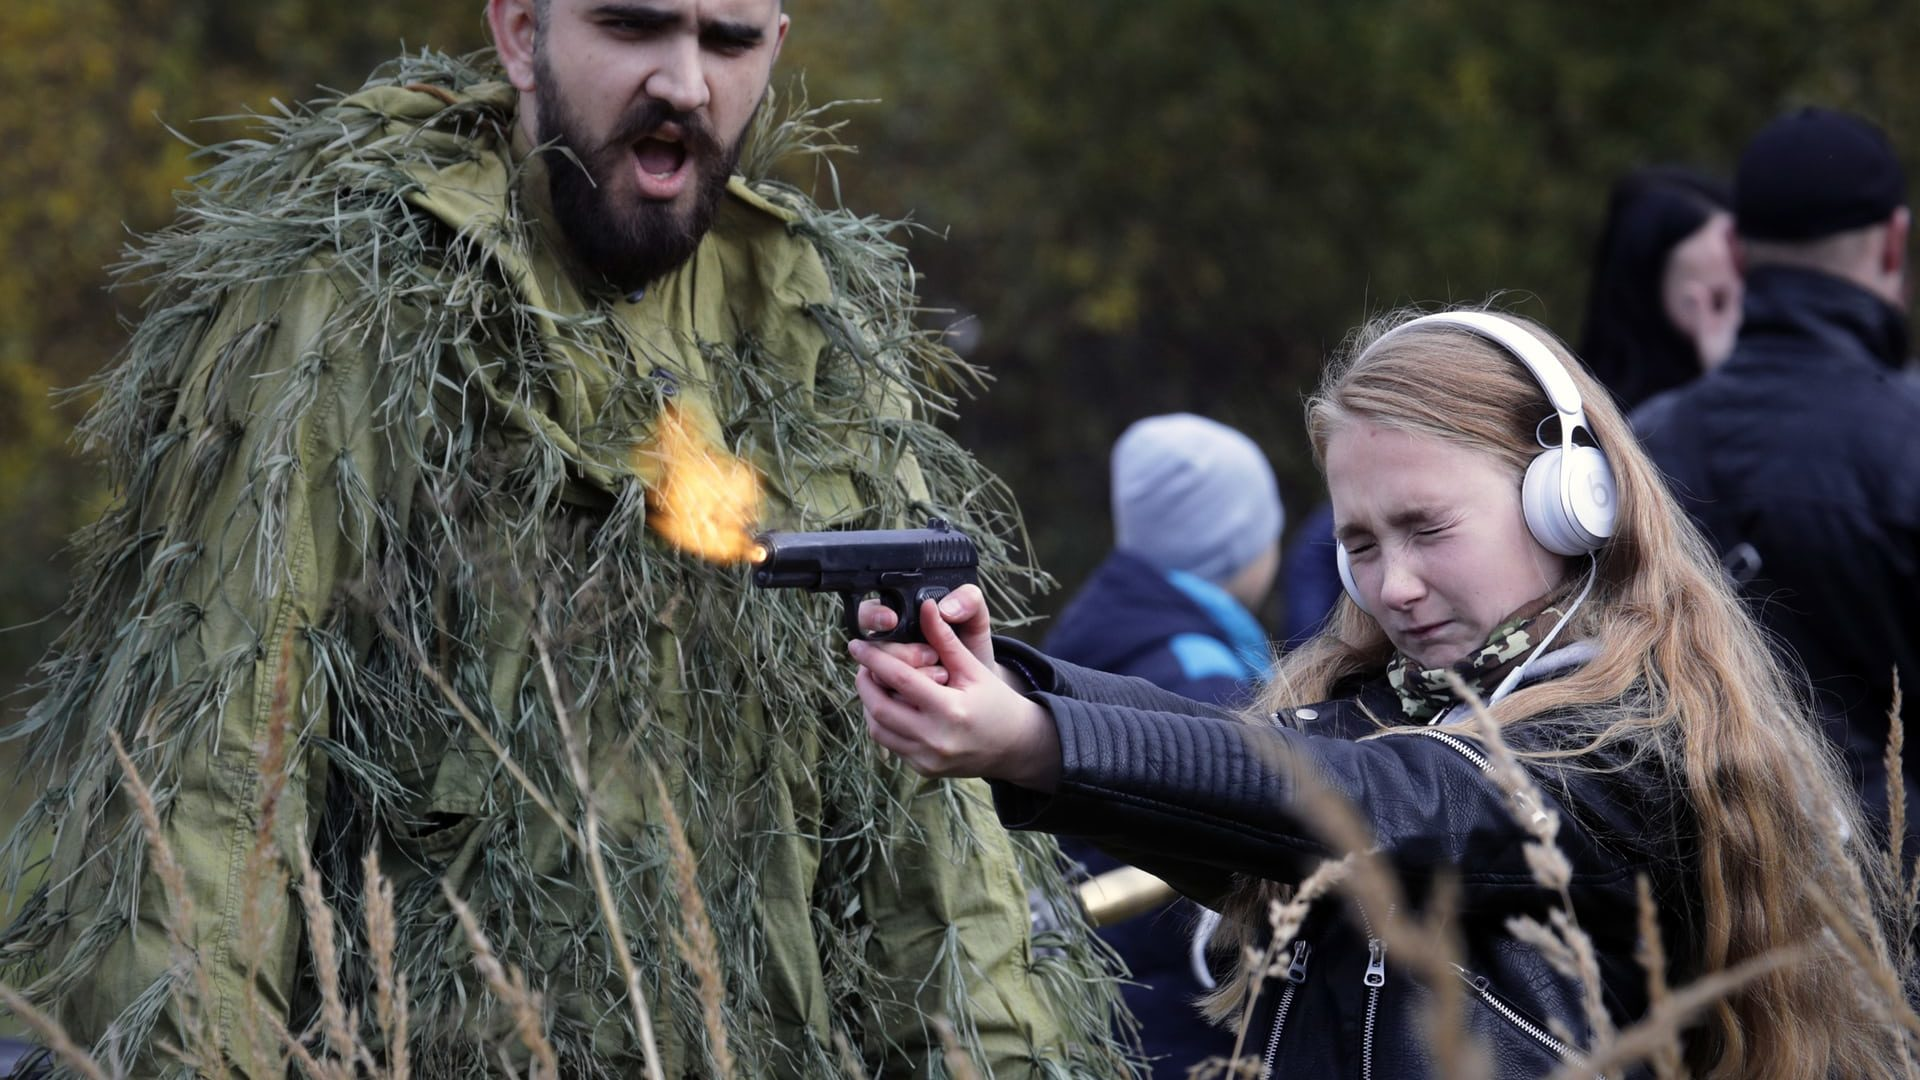 St Petersburg, Russia A girl shoots a gun filled with blanks at a weapons exhibition during a military show Photograph: Dmitri Lovetsky/AP